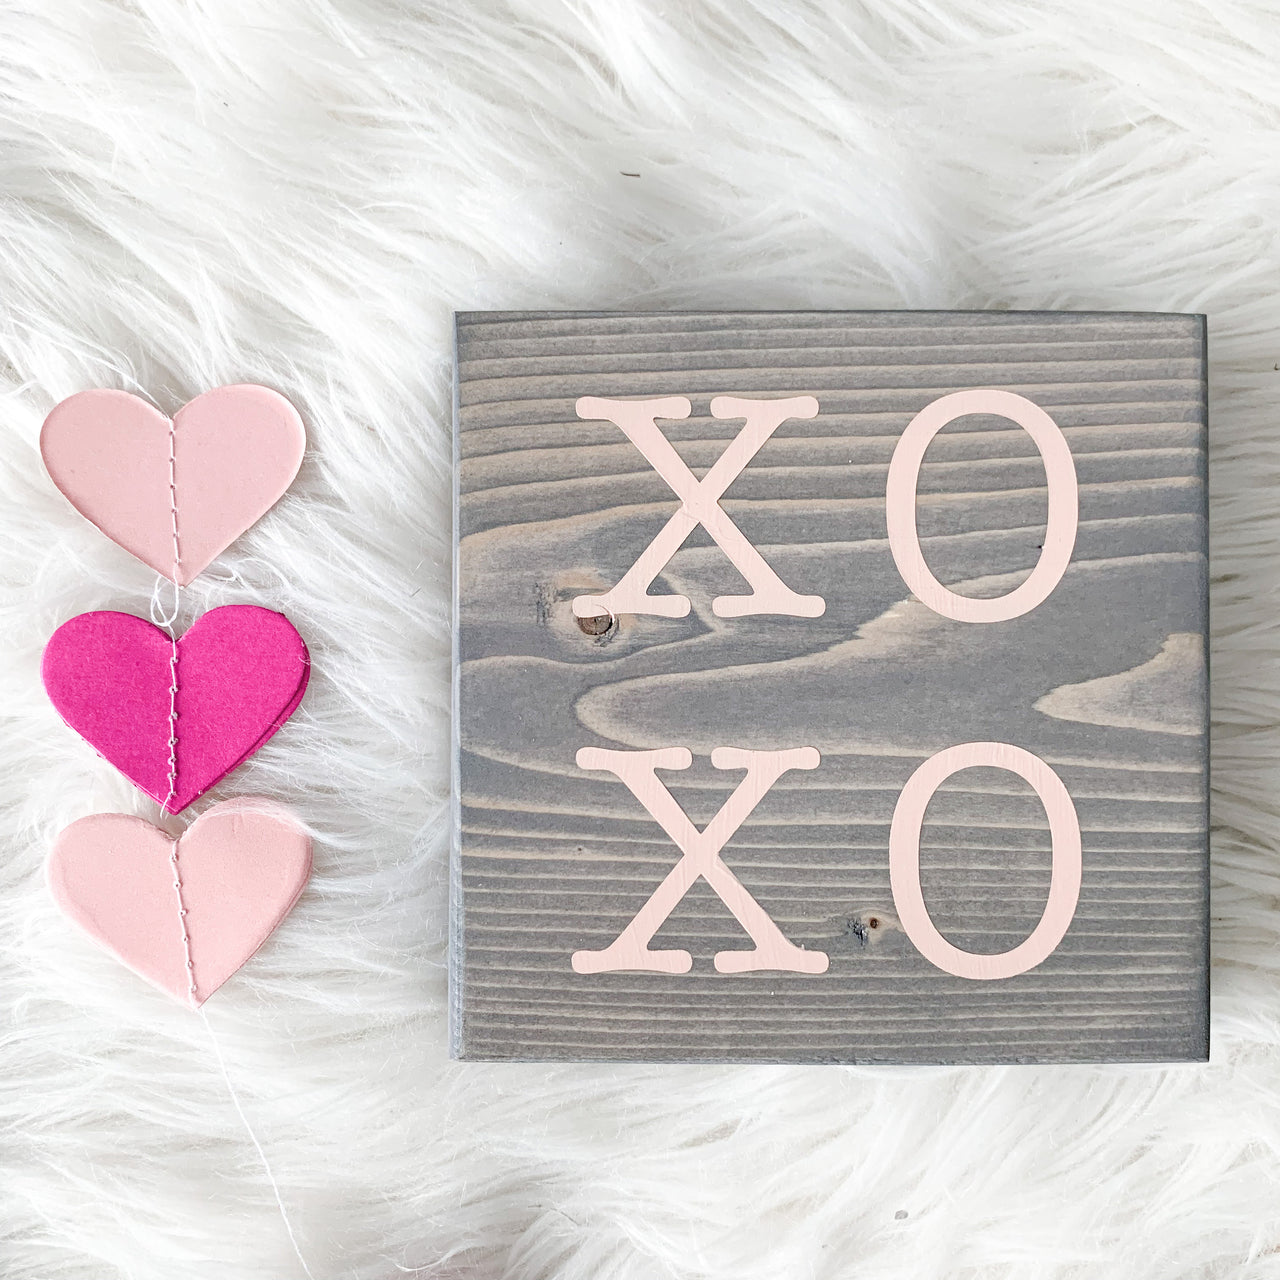 XOXO Mini Sign, XOXO Decor, Valentine's Day Decor, Valentine's Day Brunch, Valentine's Day Prop, Galentine's Day Brunch, Bridal Shower Decor